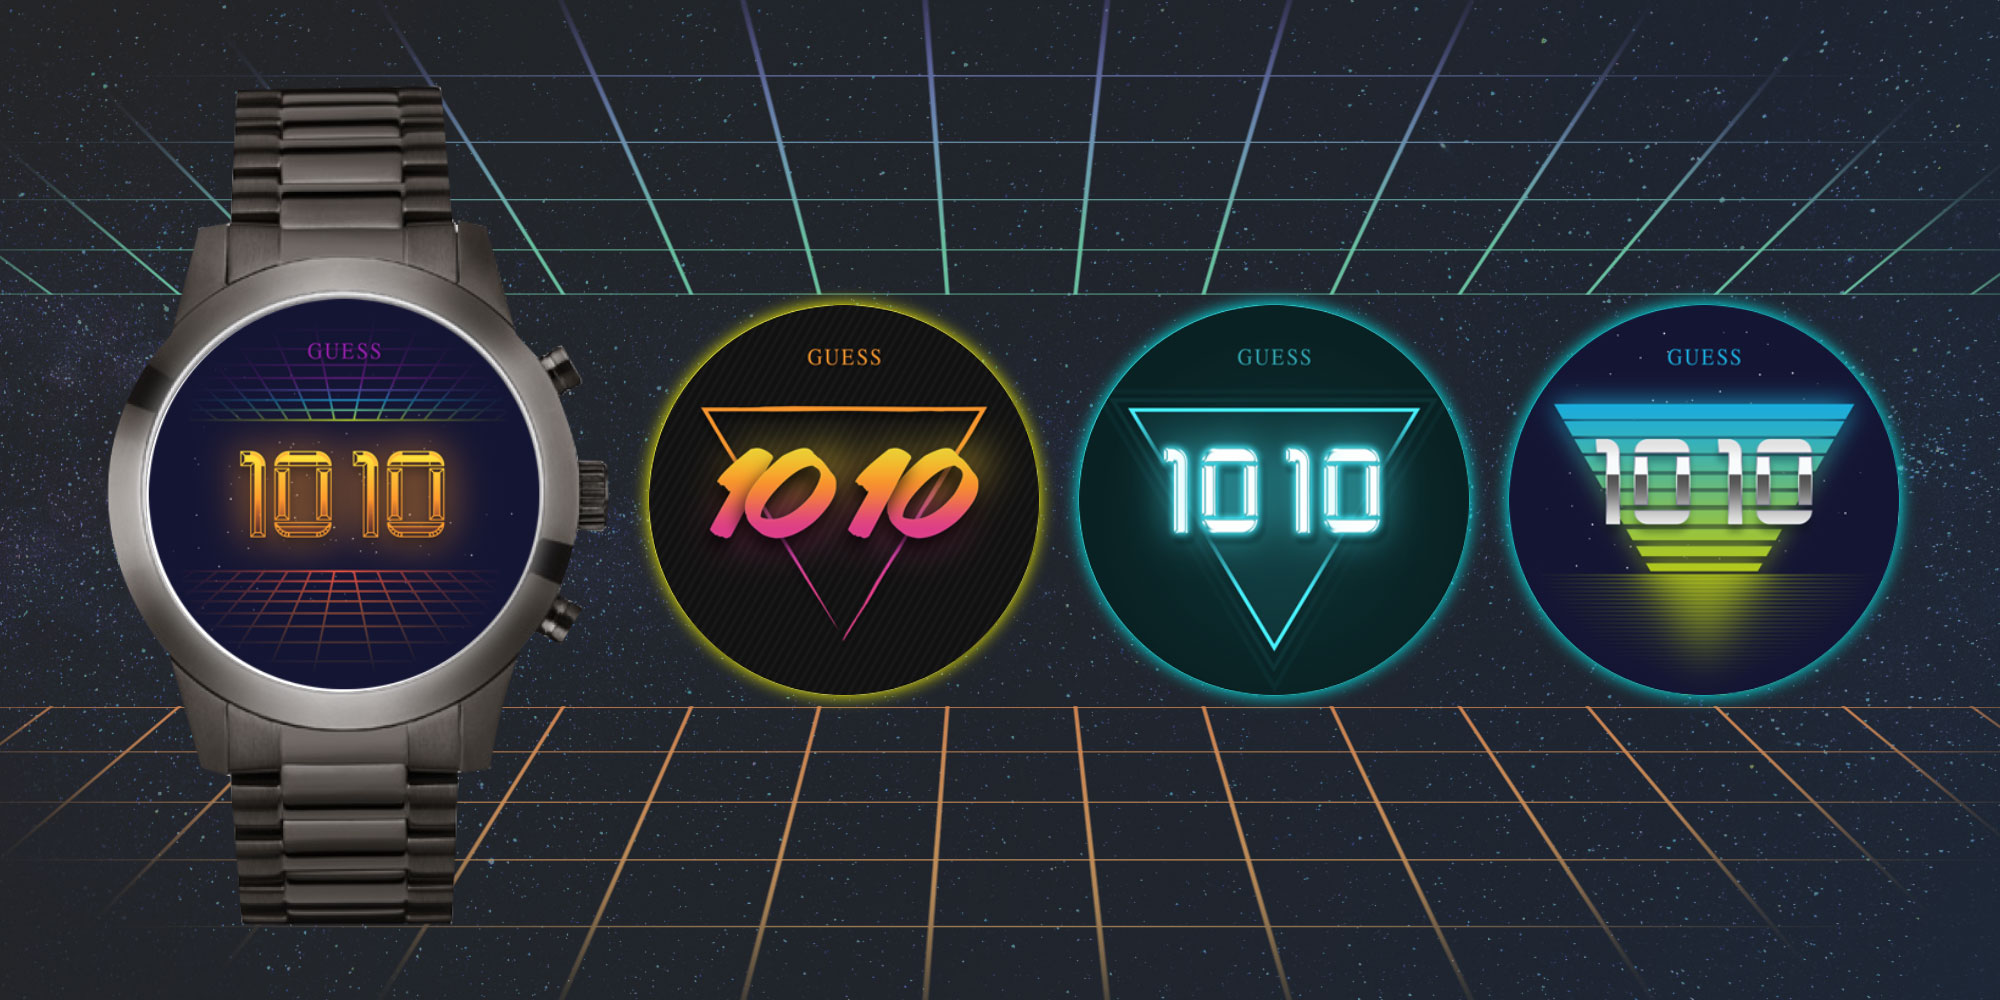 guess-watches-ustwo-arcade